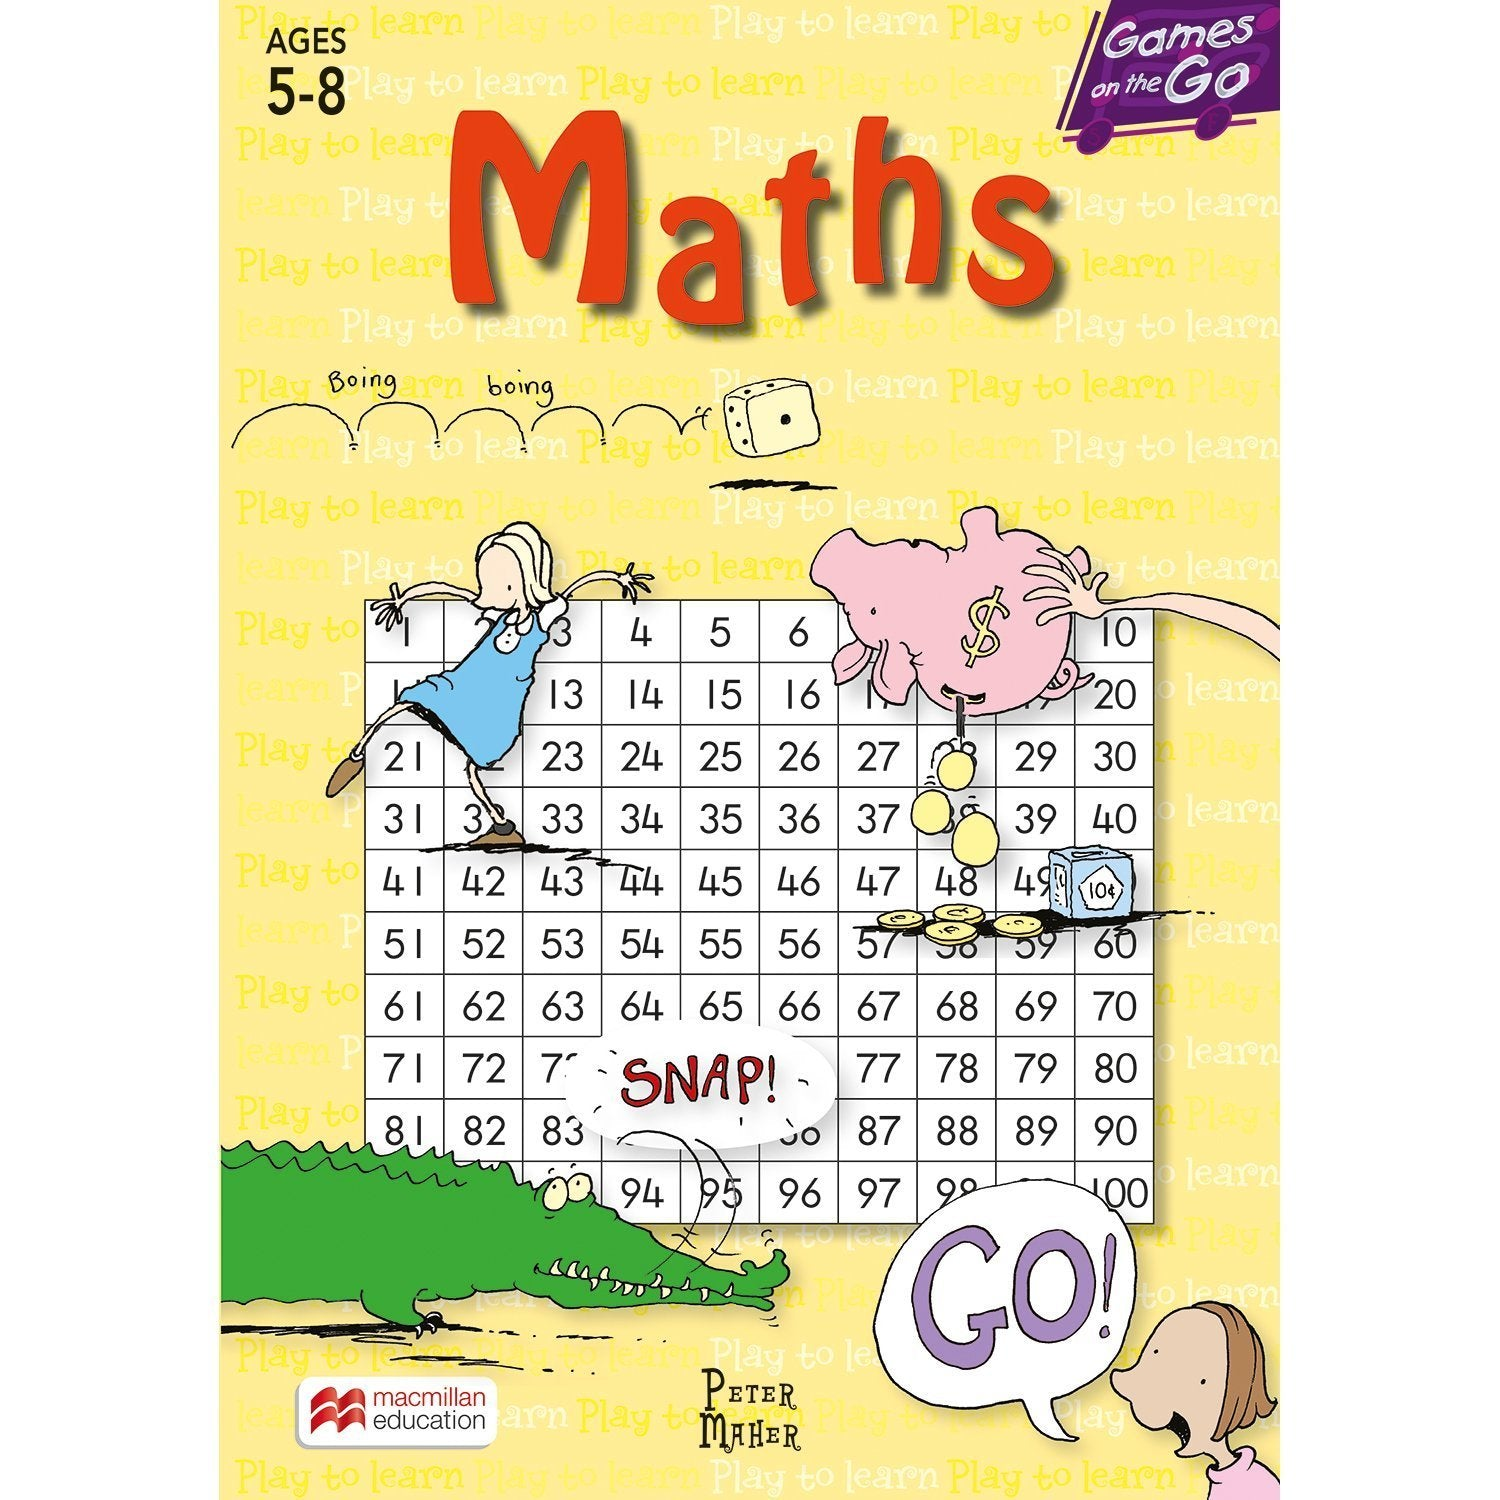 Games on the Go: Maths Age 5-8